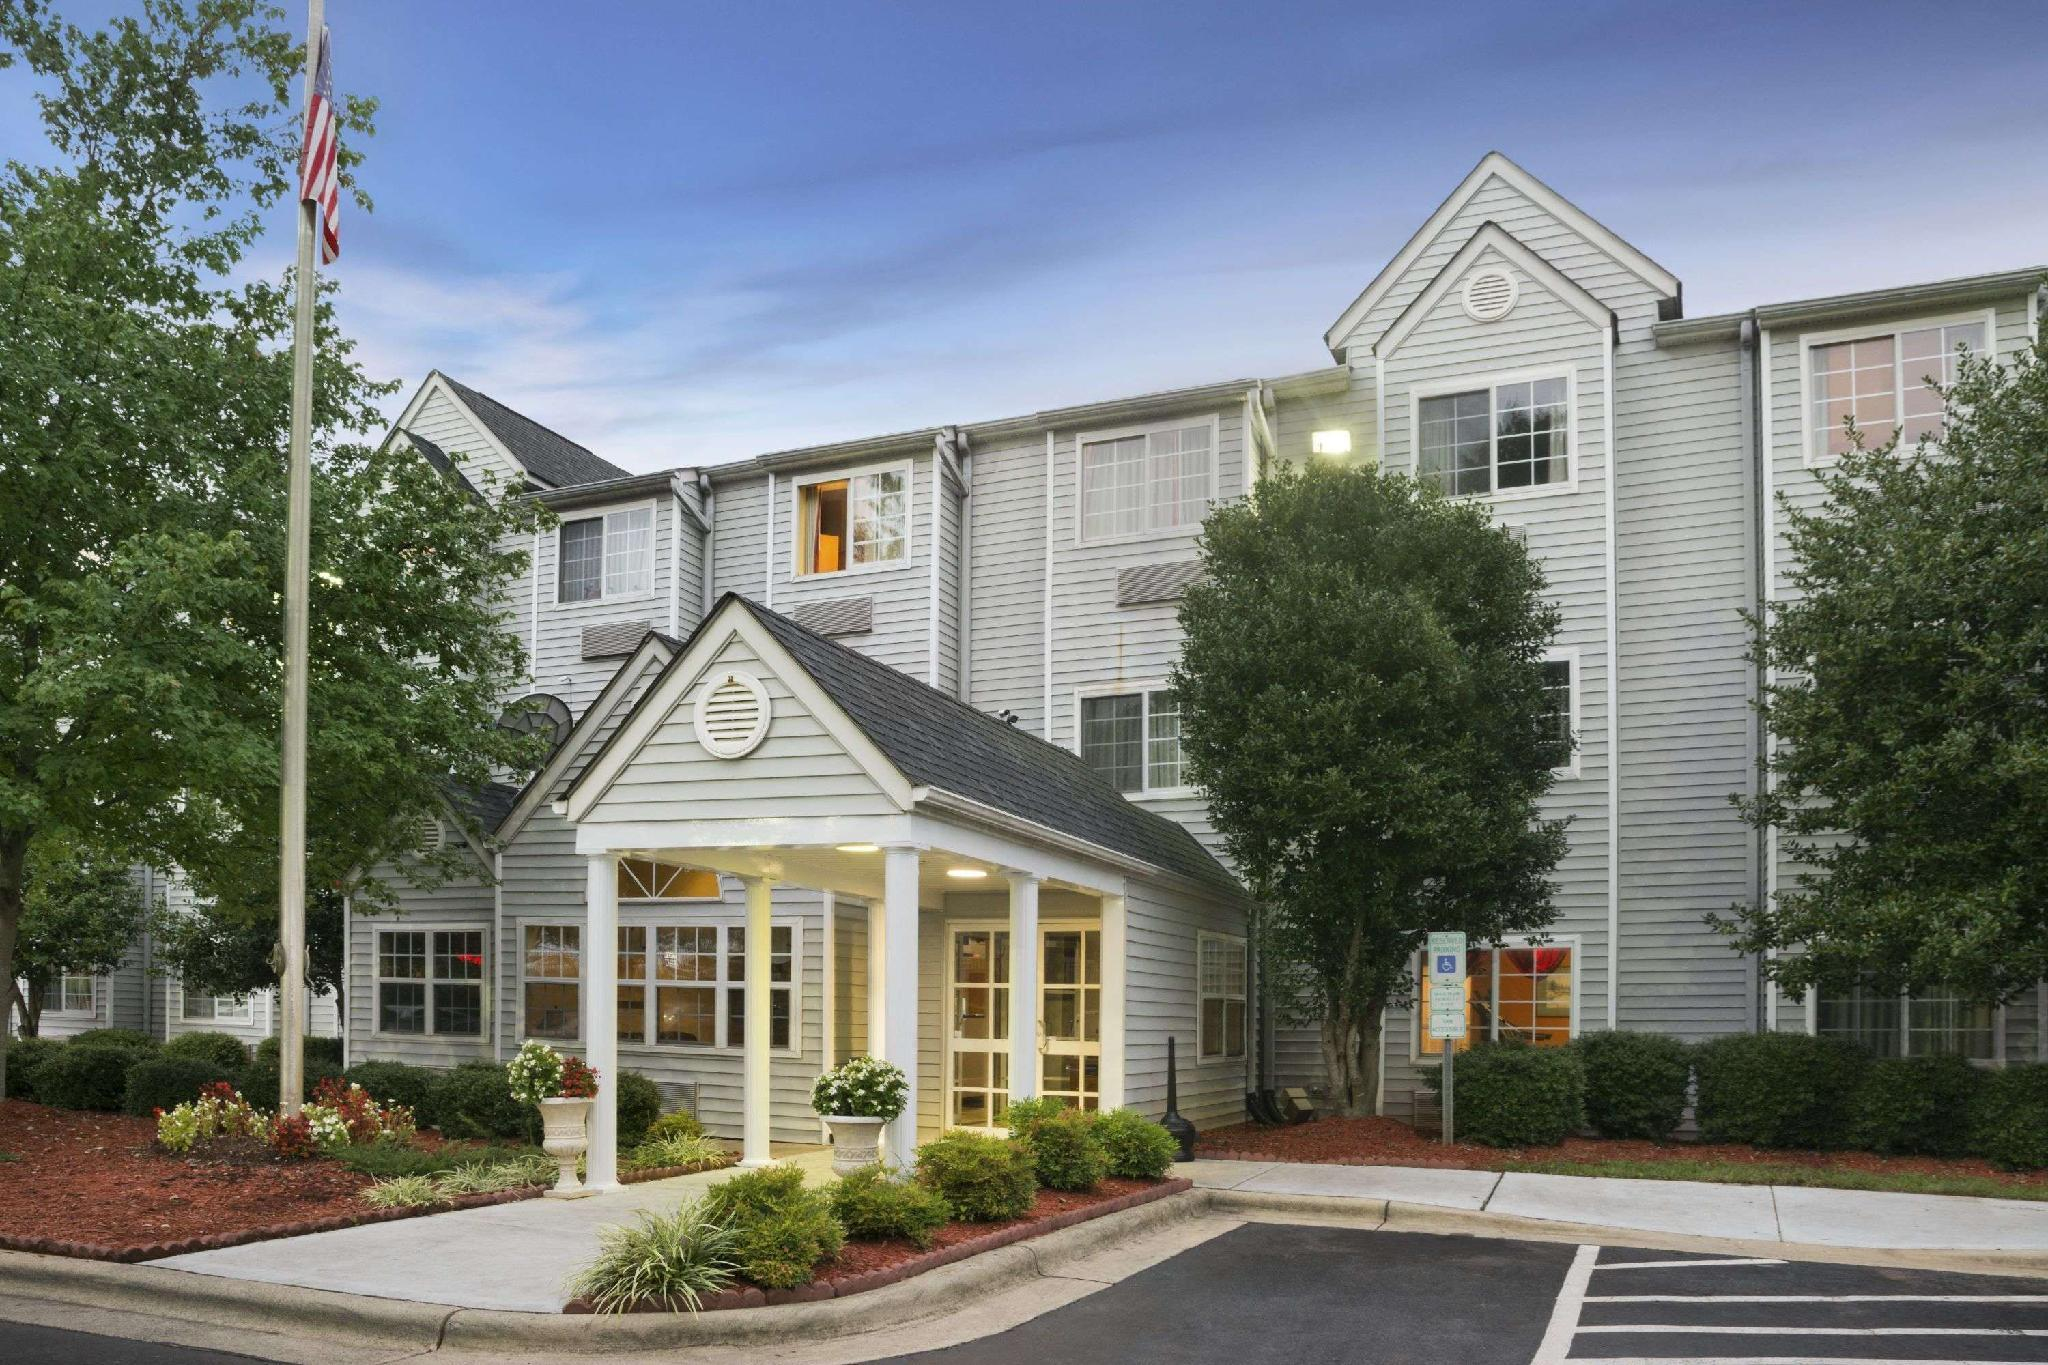 Microtel Inn And Suites By Wyndham Charlotte Airport